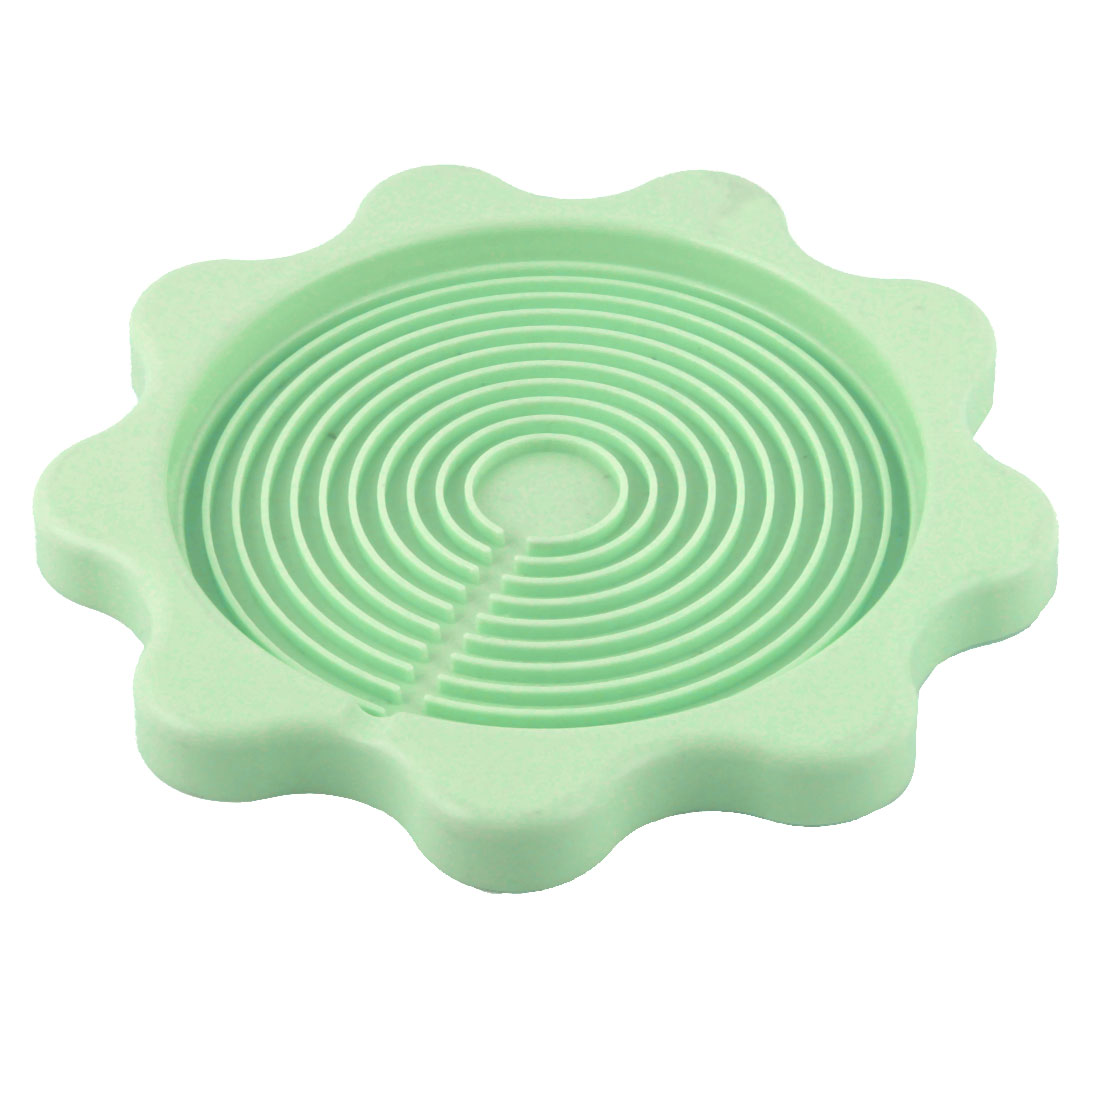 Plastic Flower Style Nonslip Pad Heat Insulation Bowl Resistant Mat Pale Green